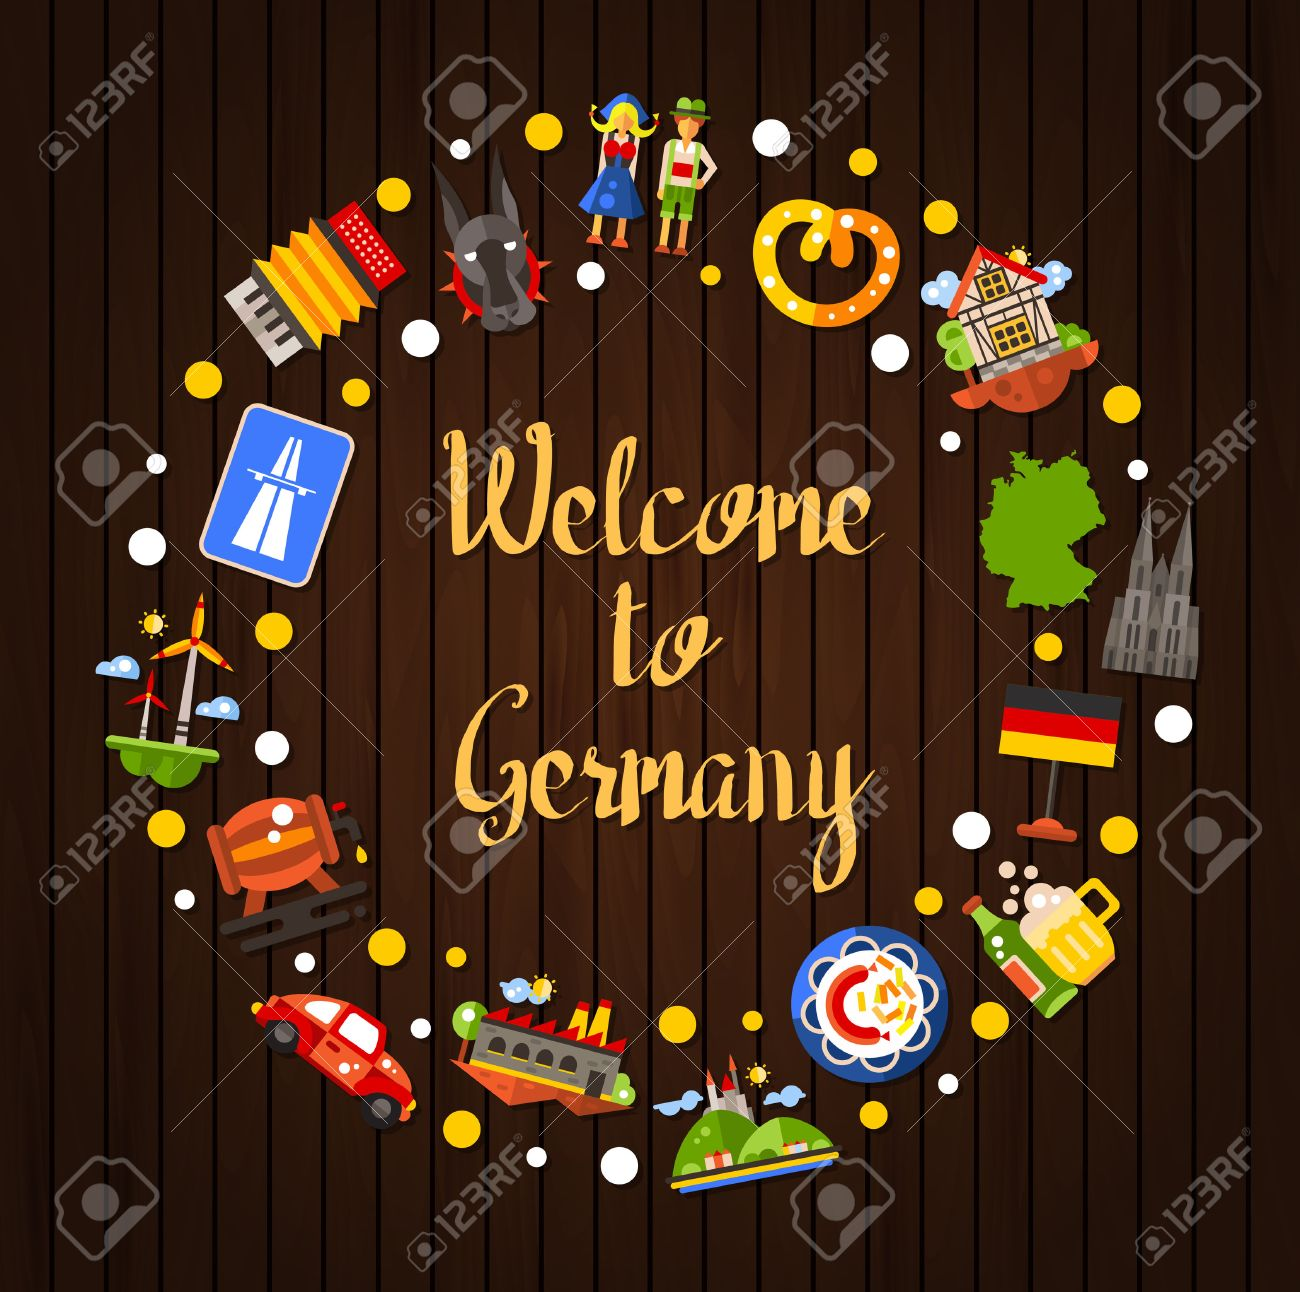 Welcome to Germany - vector flat design Germany travel circle postcard template with icons and infographics elements of famous German symbols - 51636040